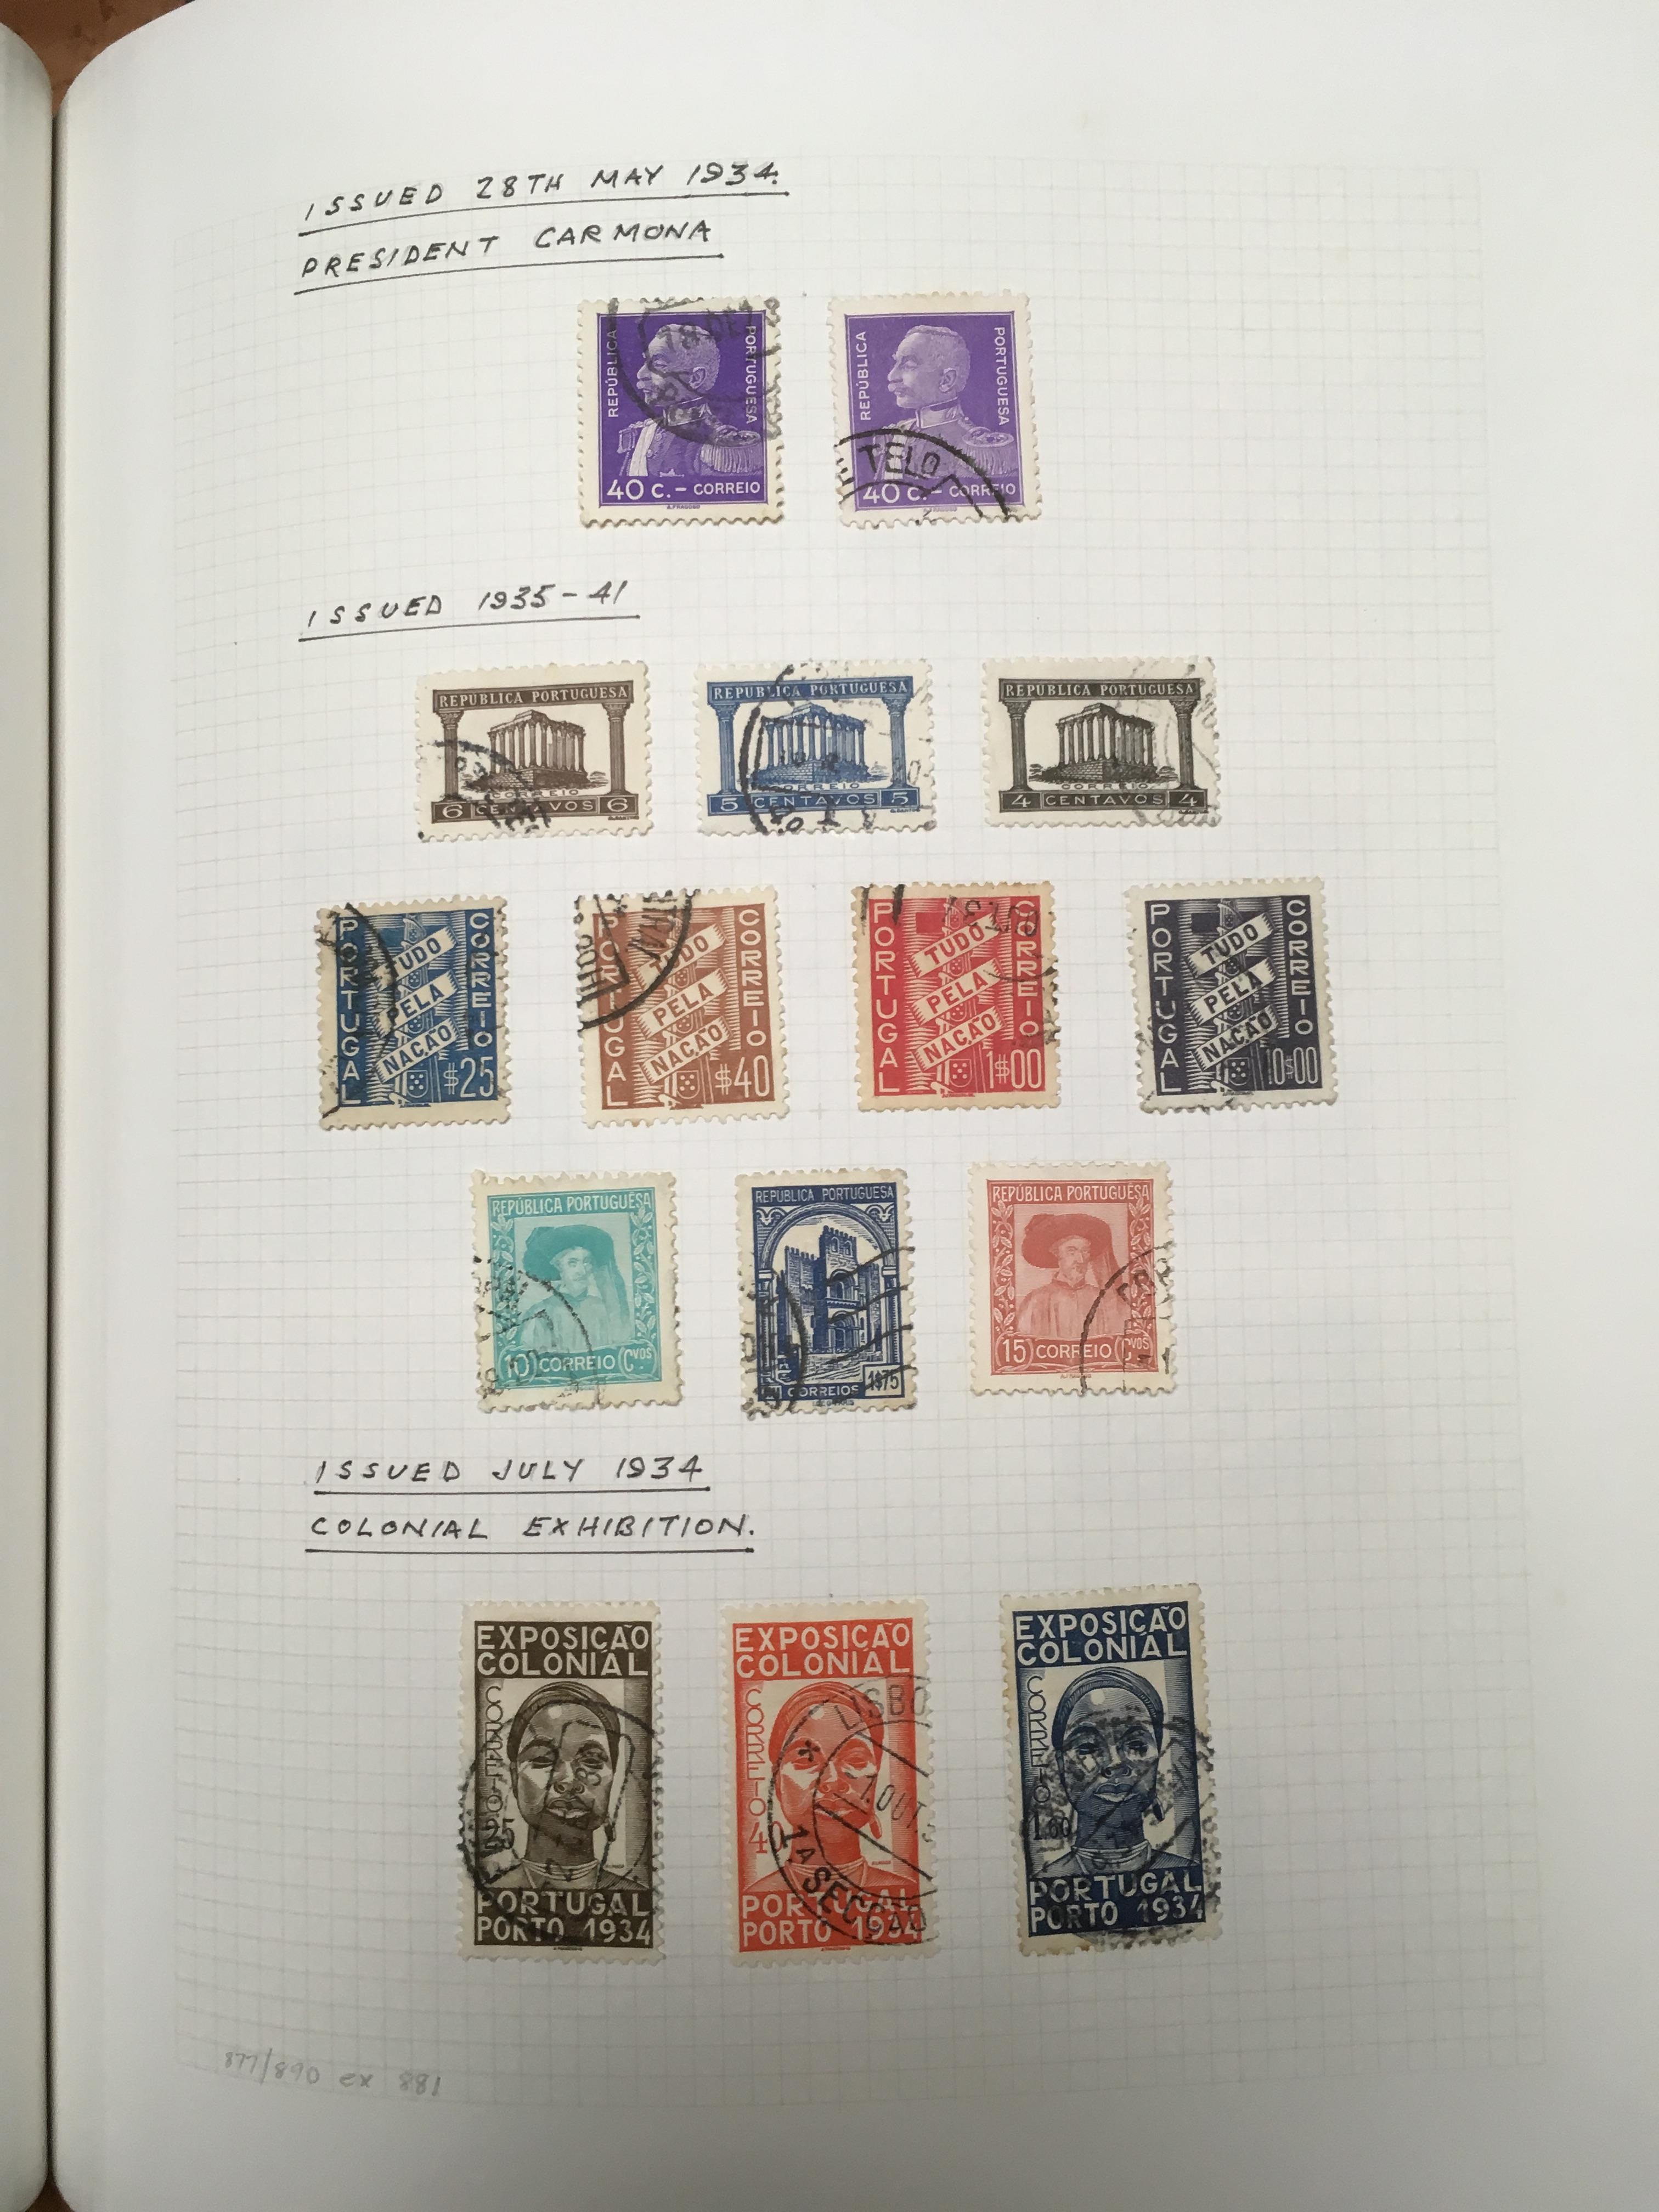 PORTUGAL: 1853-1987 MAINLY USED COLLECTI - Image 3 of 4